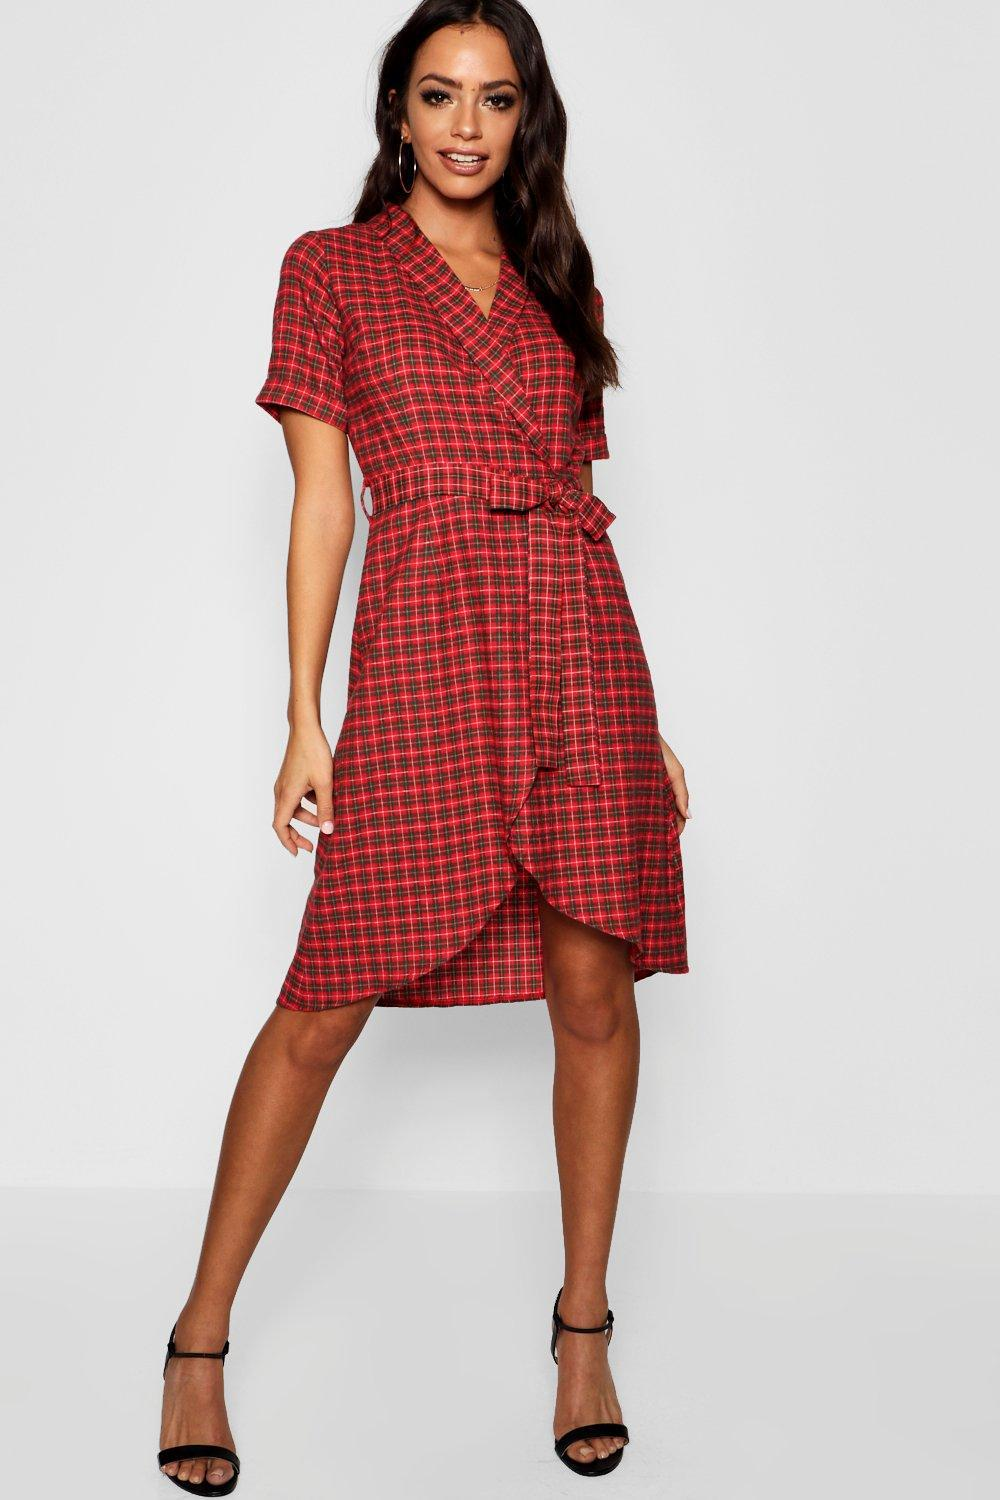 688d726b3e07 Lyst - Boohoo Tartan Print Belted Wrap Midi Dress in Red